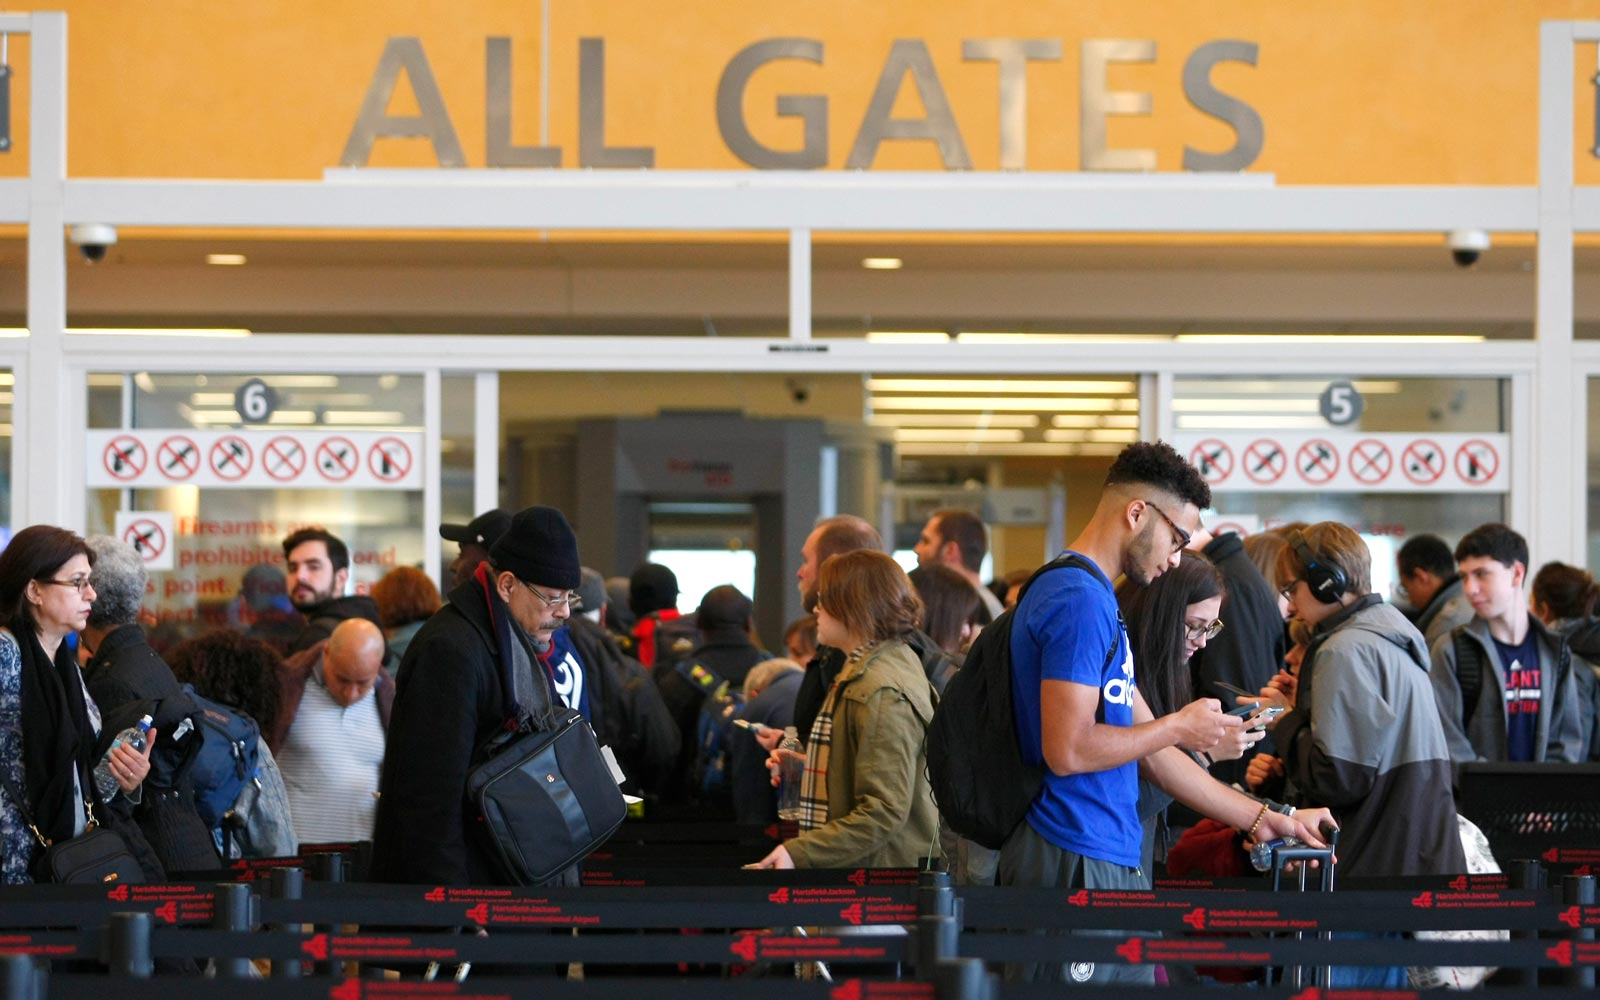 Atlanta's Hartsfield-Jackson Named World's Busiest Airport for 21st Year in a Row